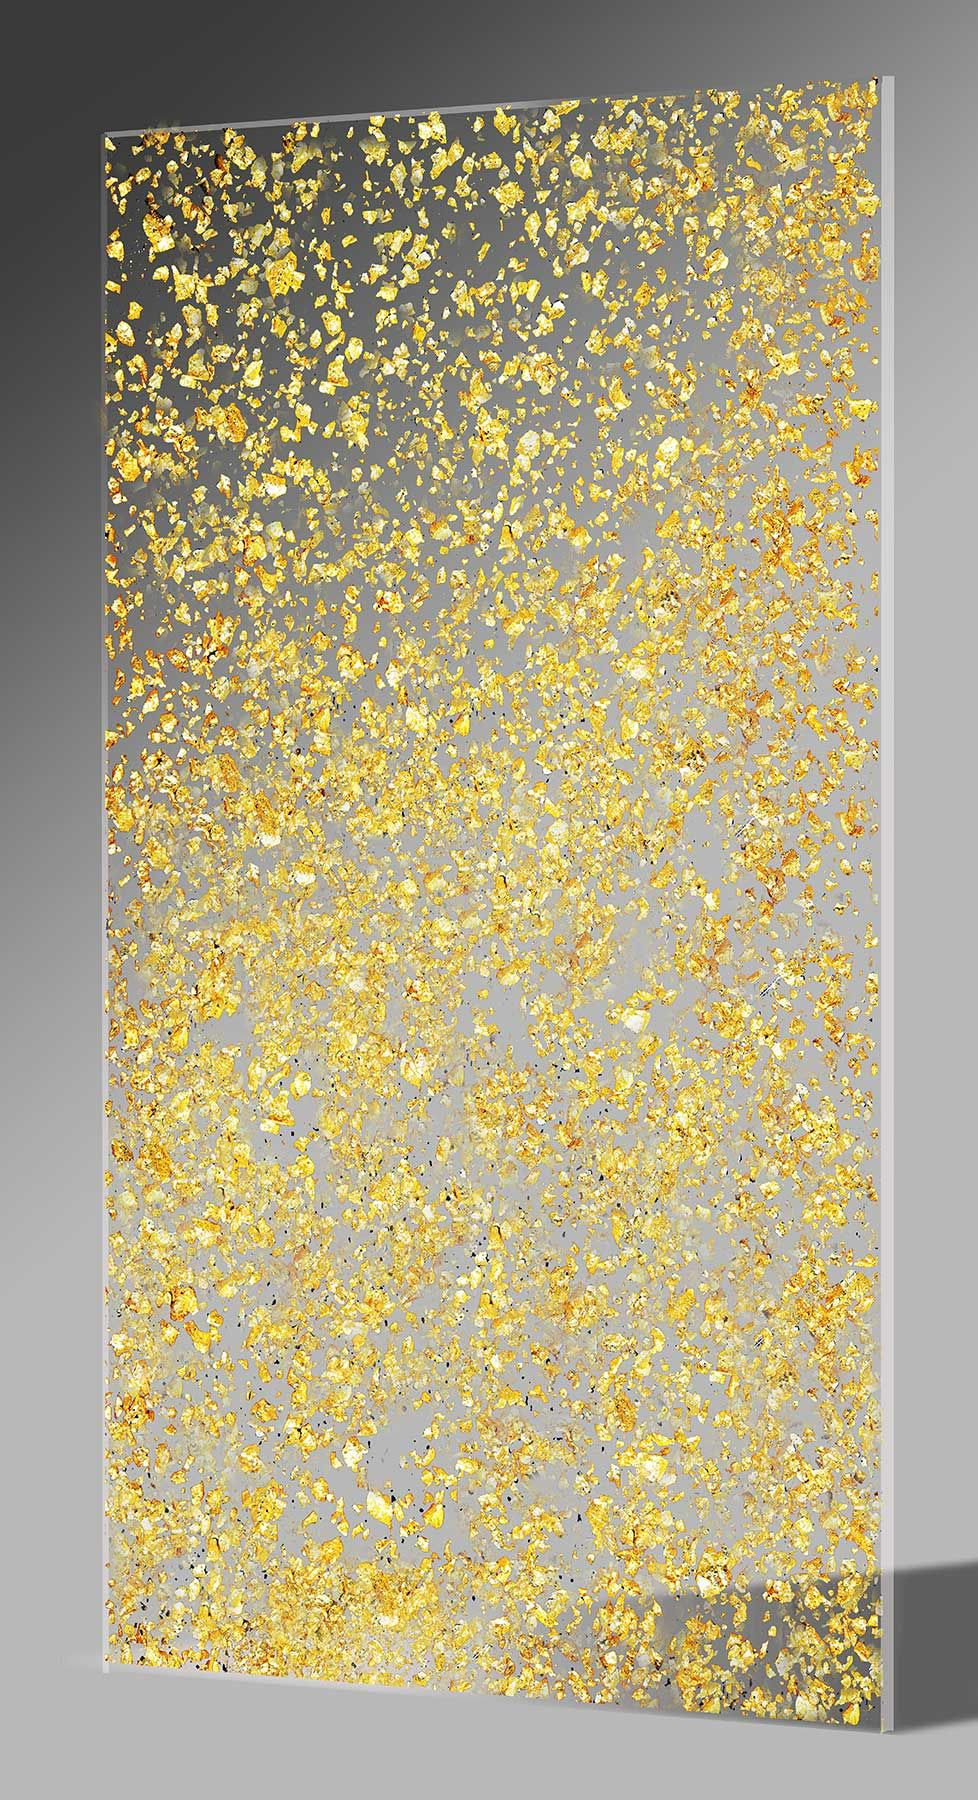 Gold Flakes In Acrylic Sheets Acrylic Sheets Resin Design Gold Flakes